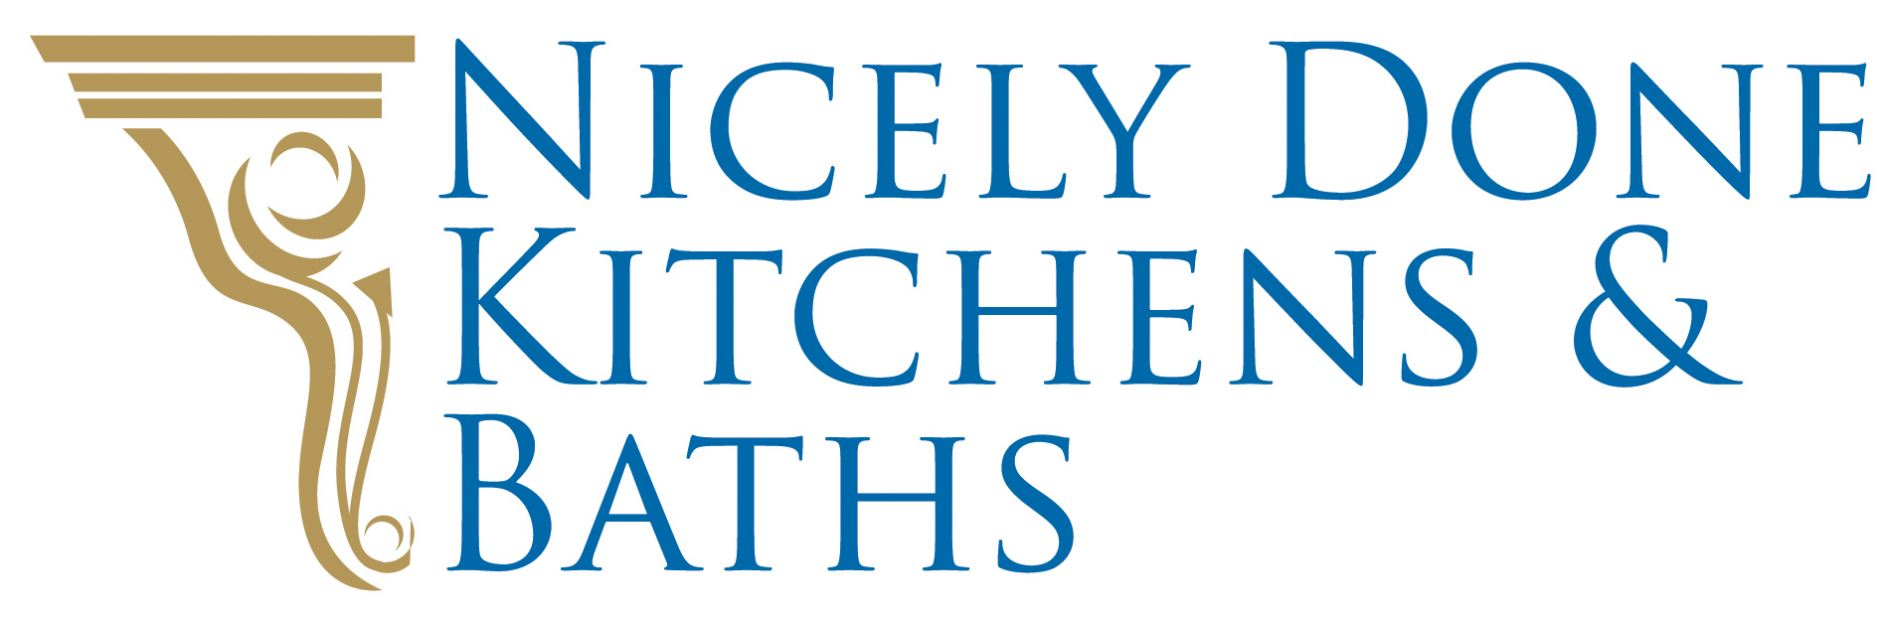 Nicely Done Kitchens And Baths Earns Esteemed 2016 Angie 39 S List Super Service Award Nicely